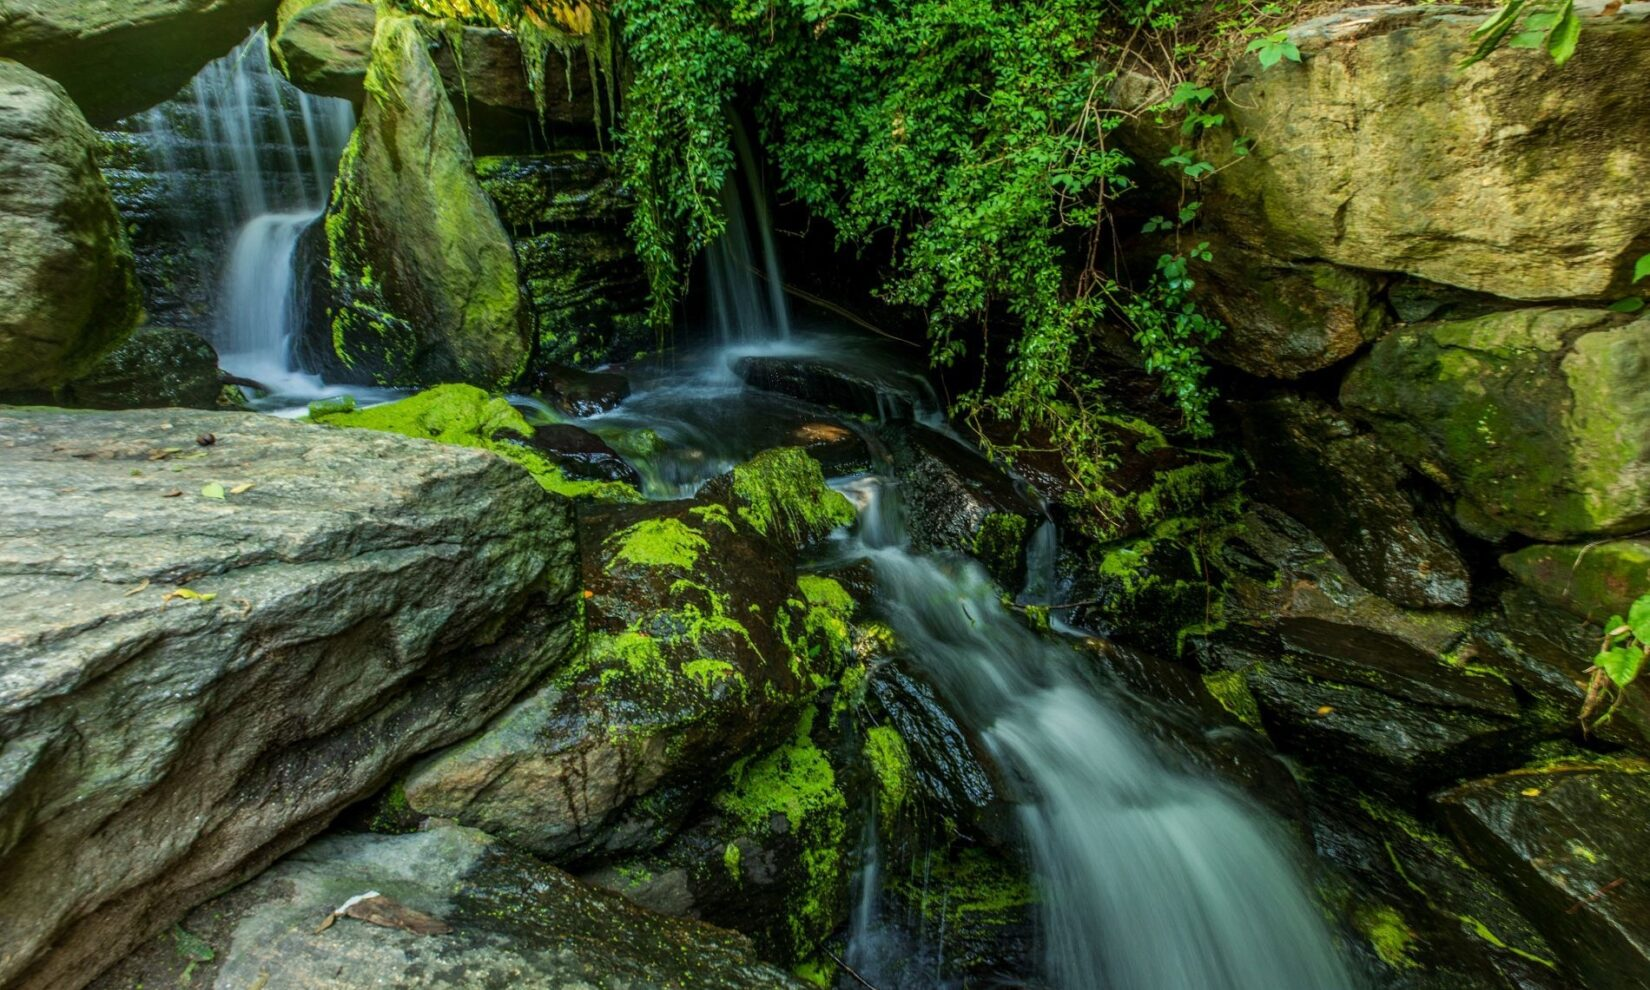 A waterfall tumbles down a rocky ledge in the Ravine.